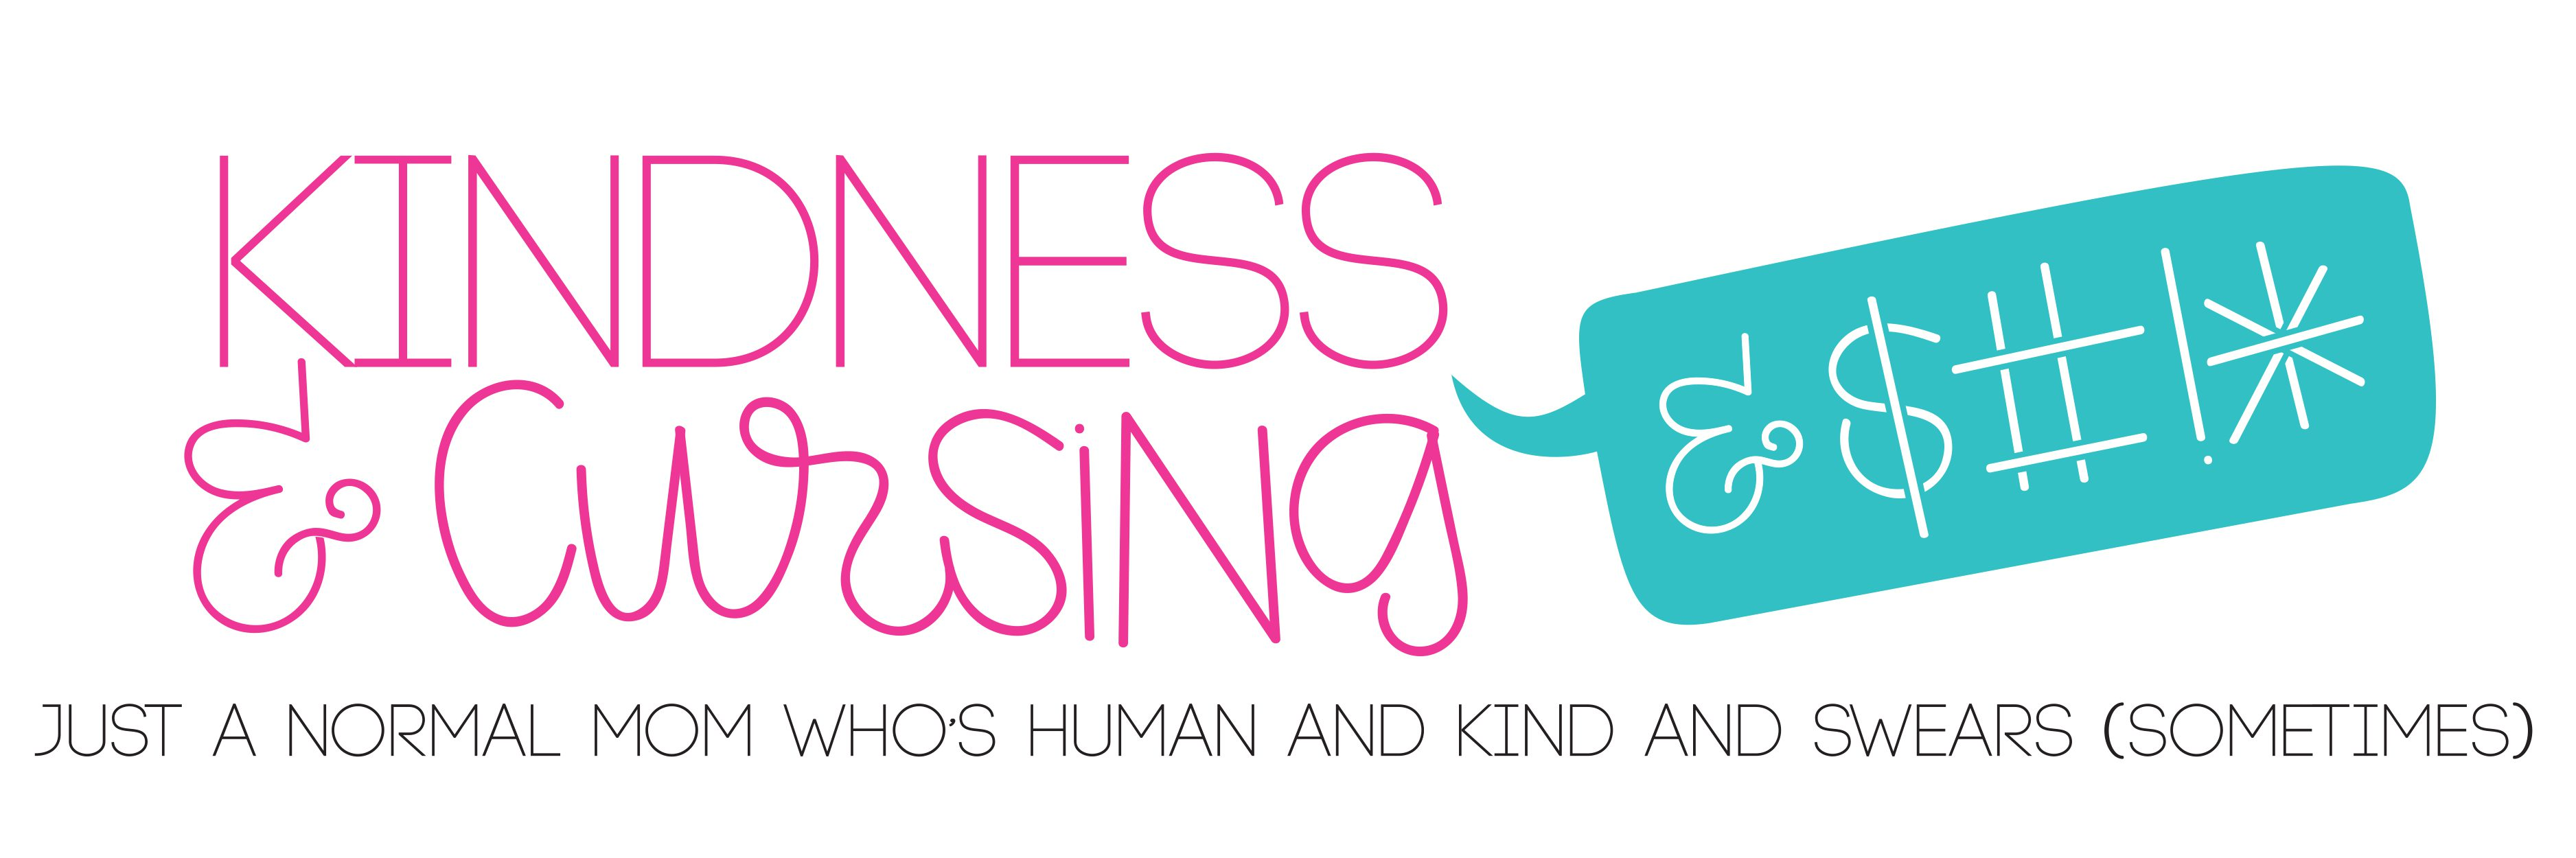 Kindness & Cursing